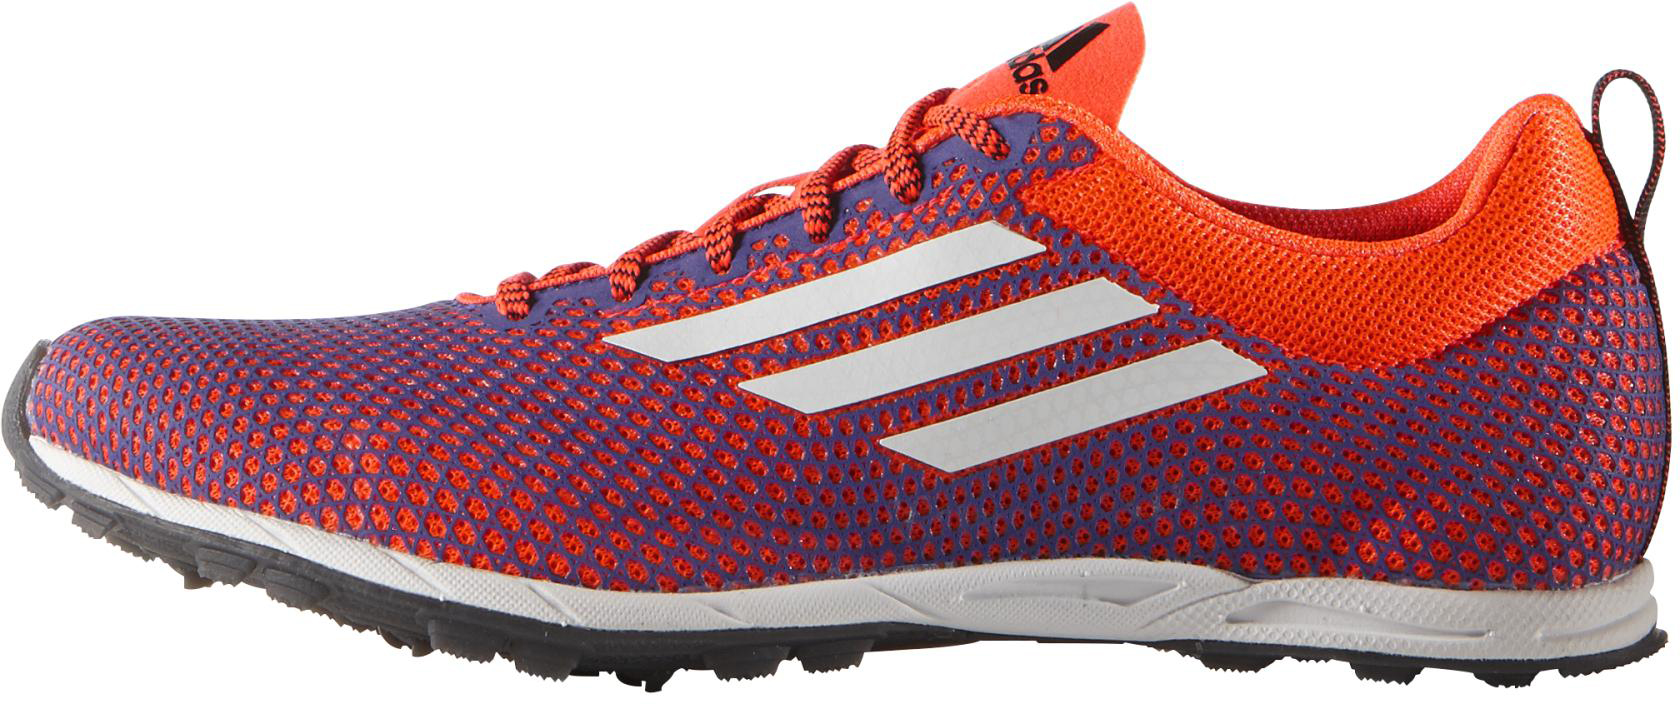 Cross H 2017 F Xcs Chaussures Rouge Country Pointes adidas 4ALjq3RcS5